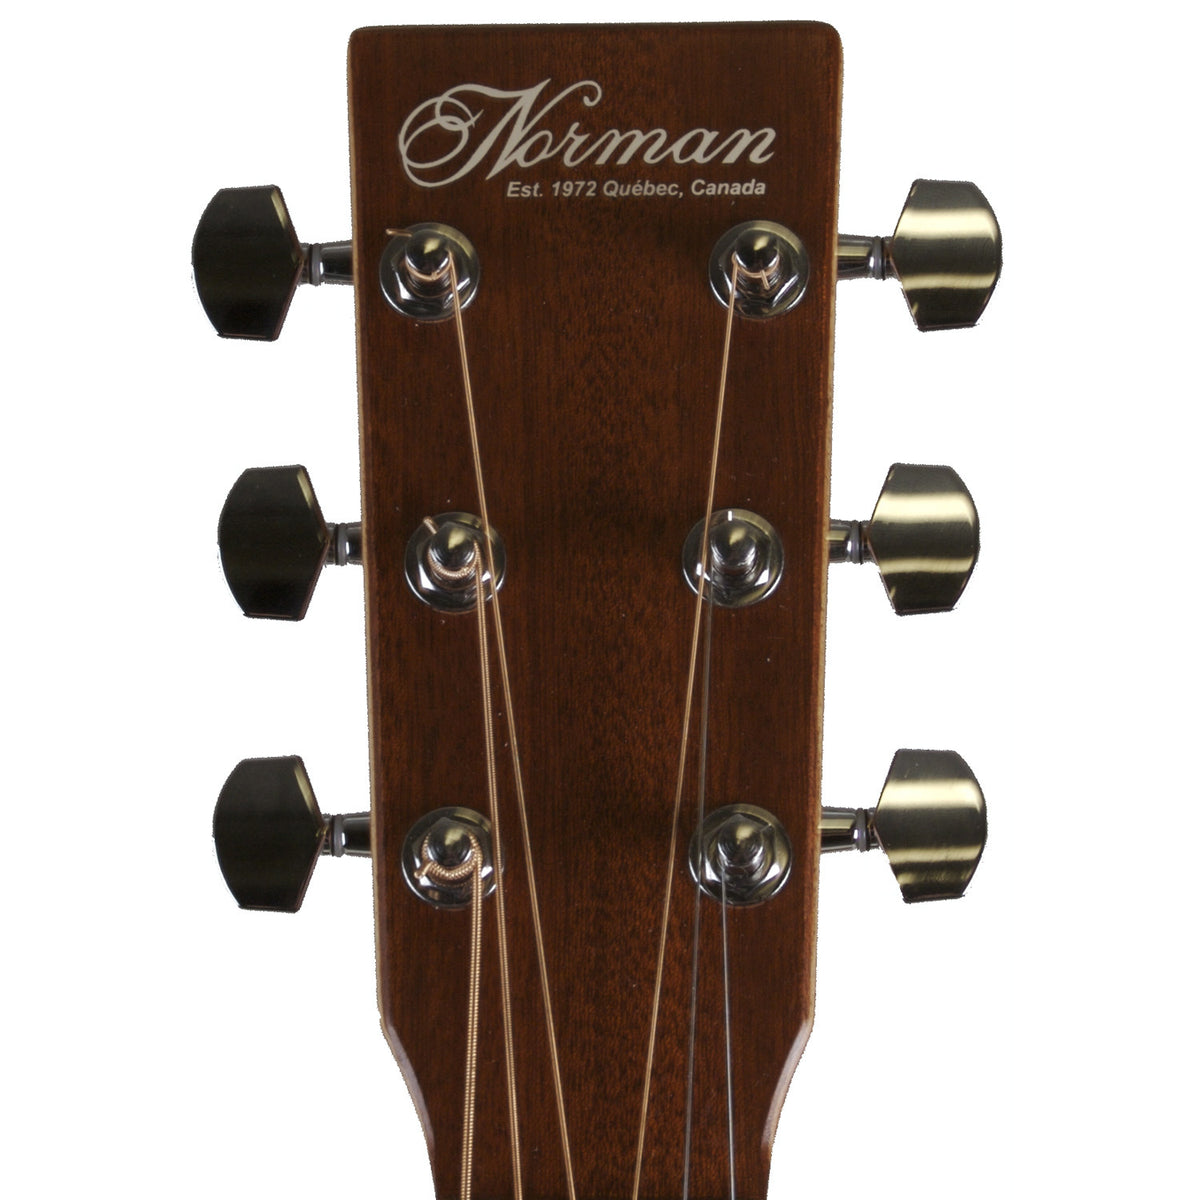 Norman Studio ST-40 - Garrett Park Guitars  - 7